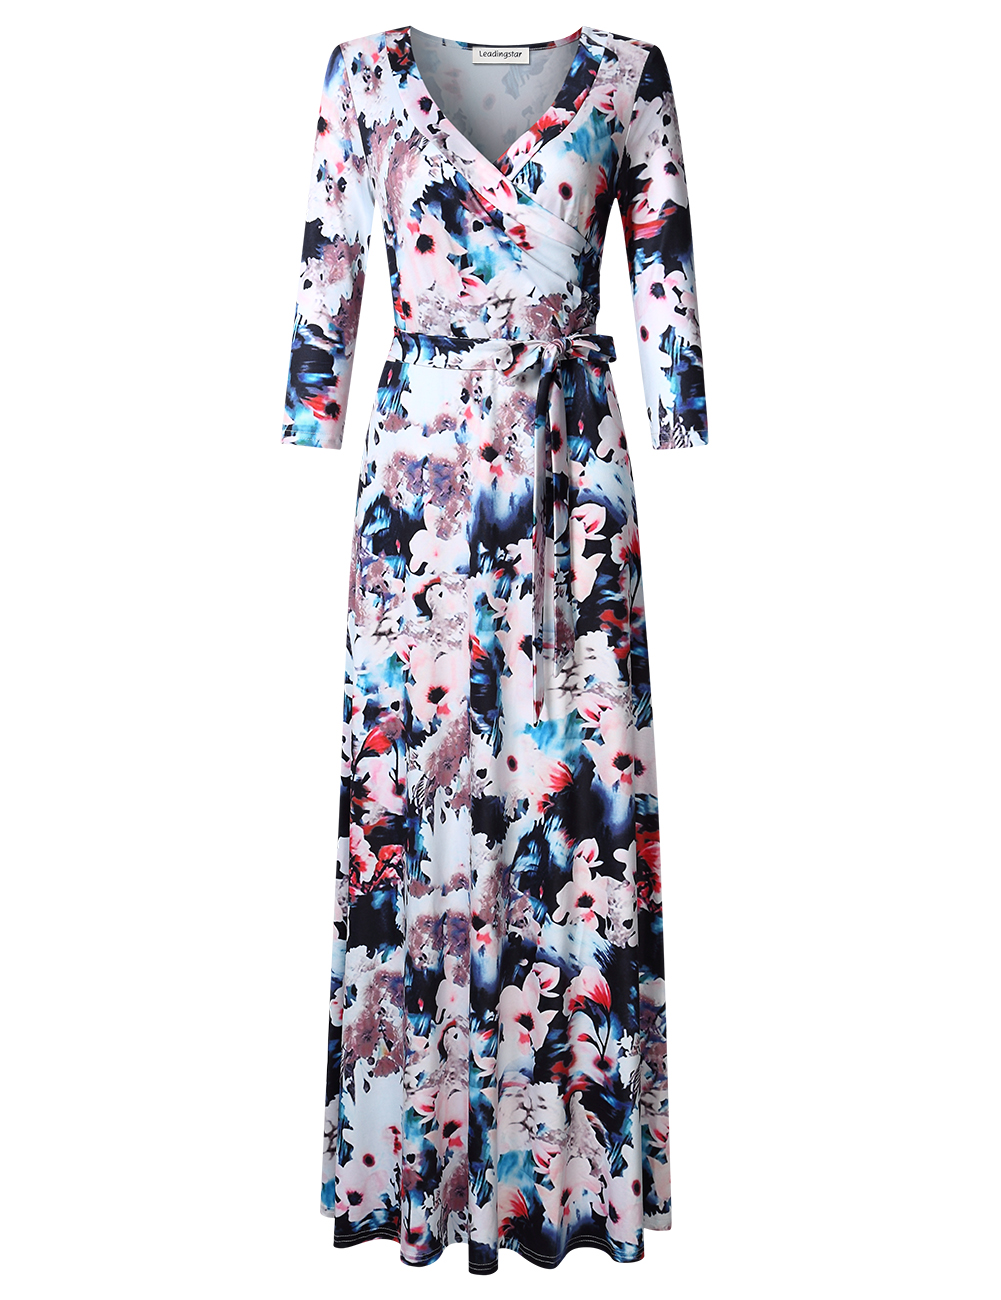 Leadingstar Women's Dress Ink floral print M